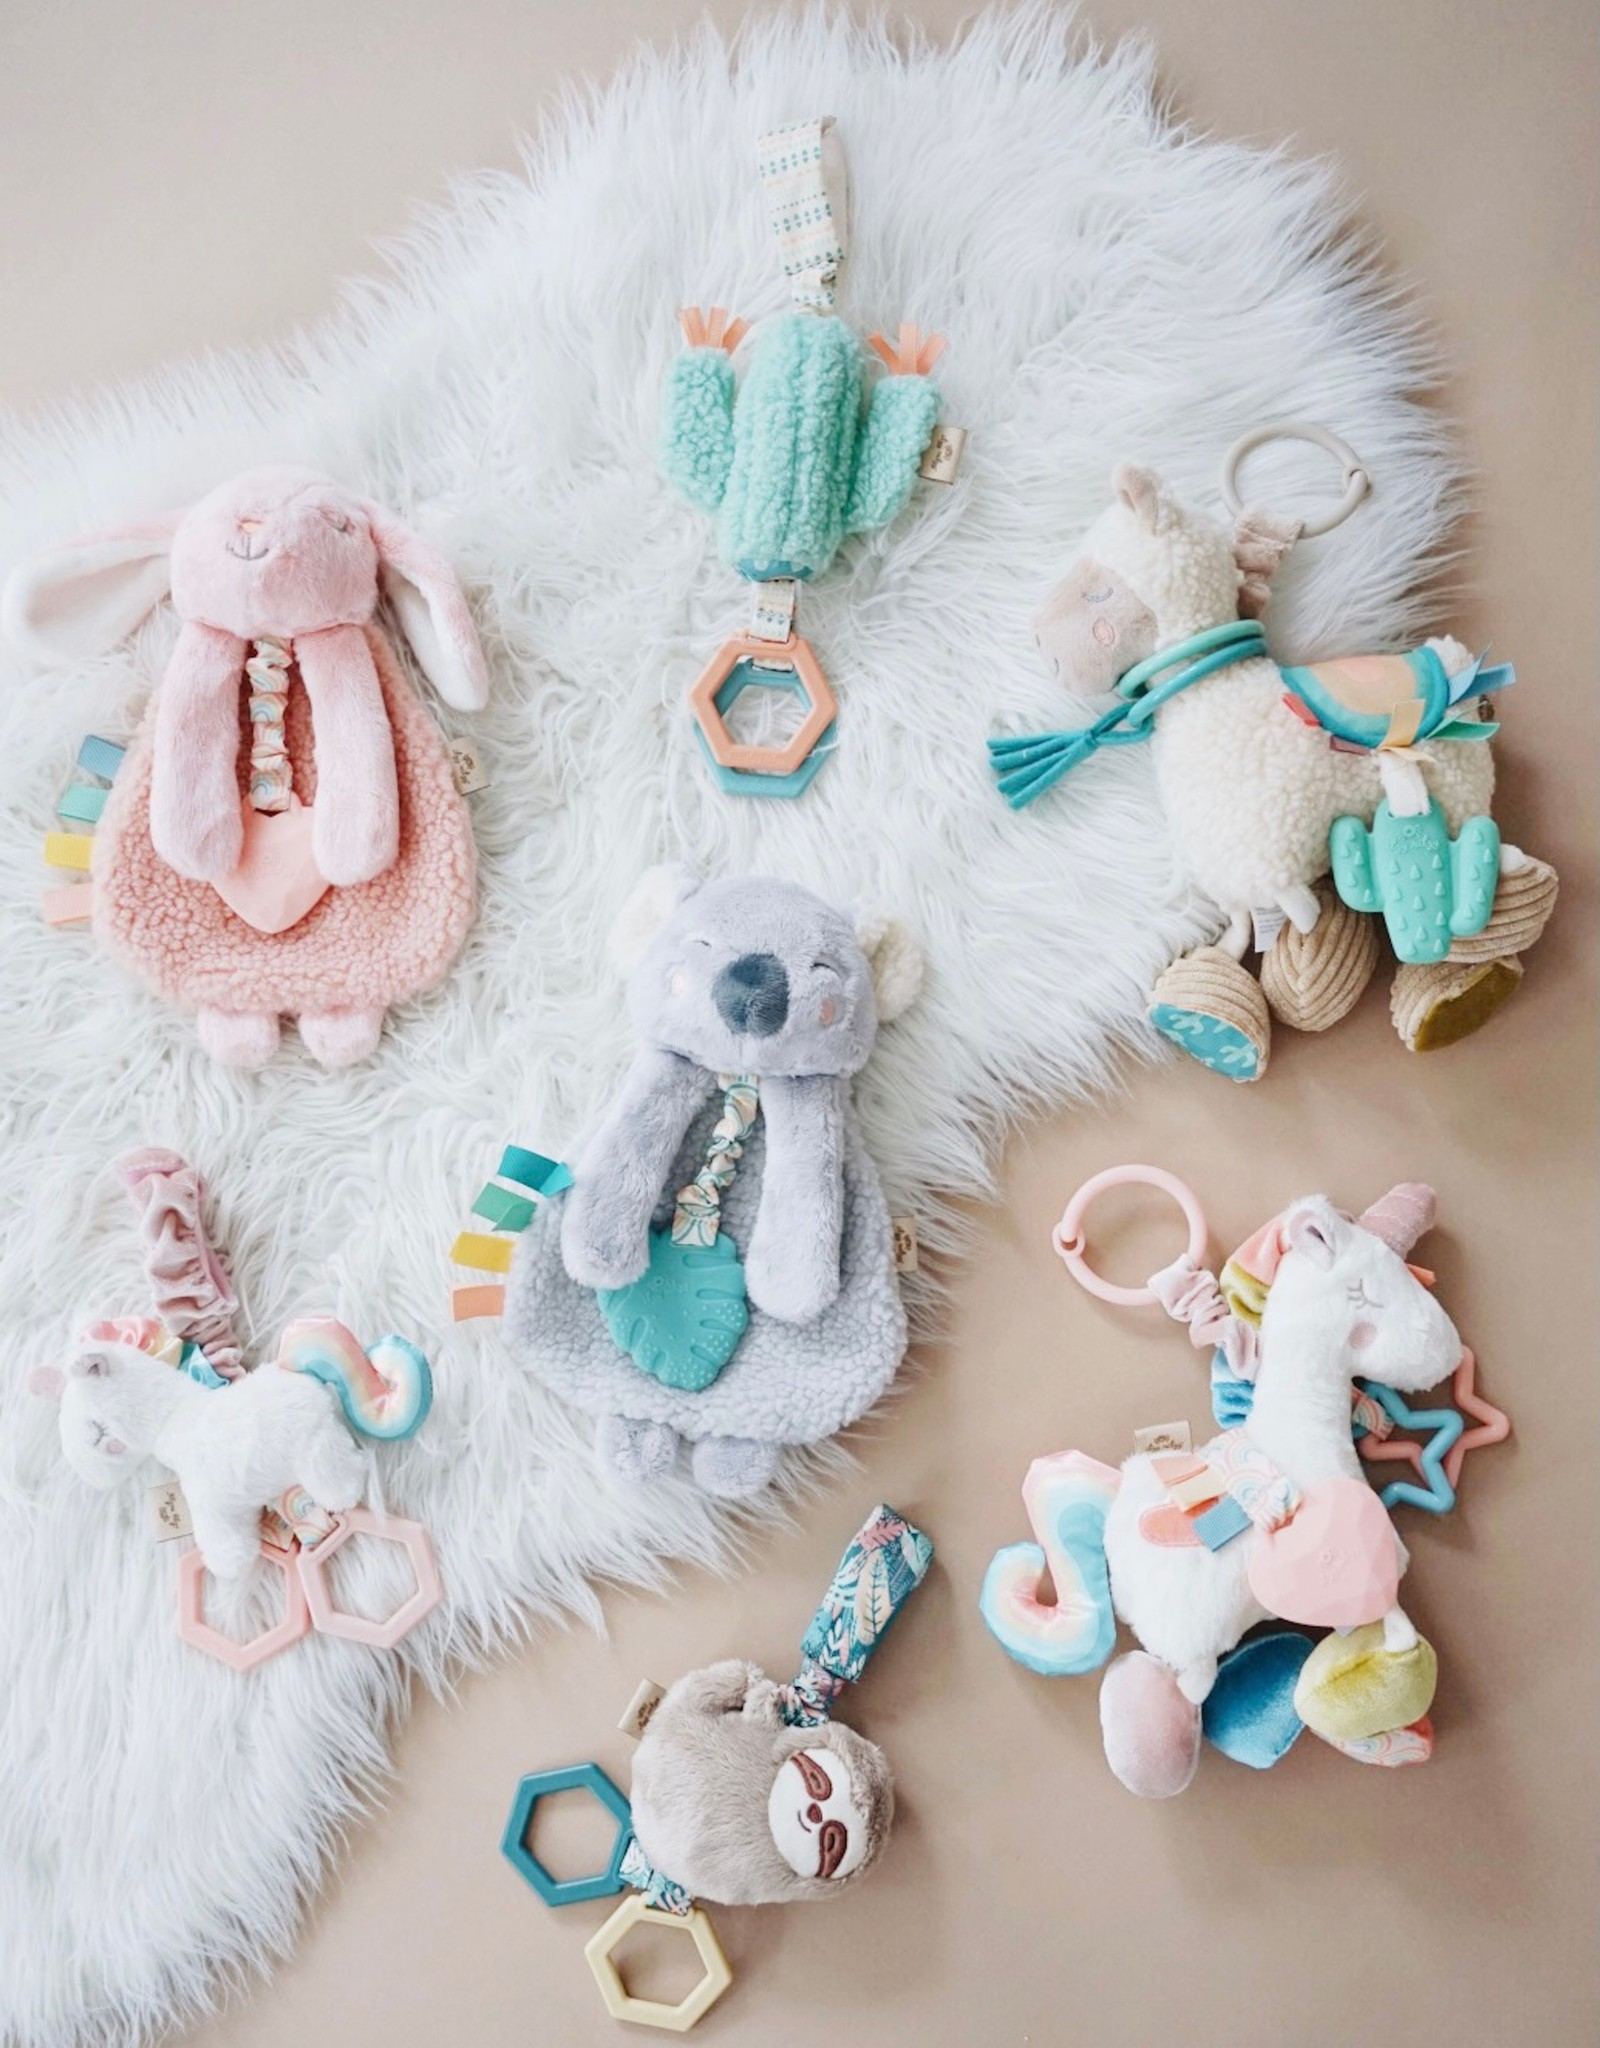 Itzy Ritzy Link & Love Unicorn Activity Plush Silicone Teether Toy